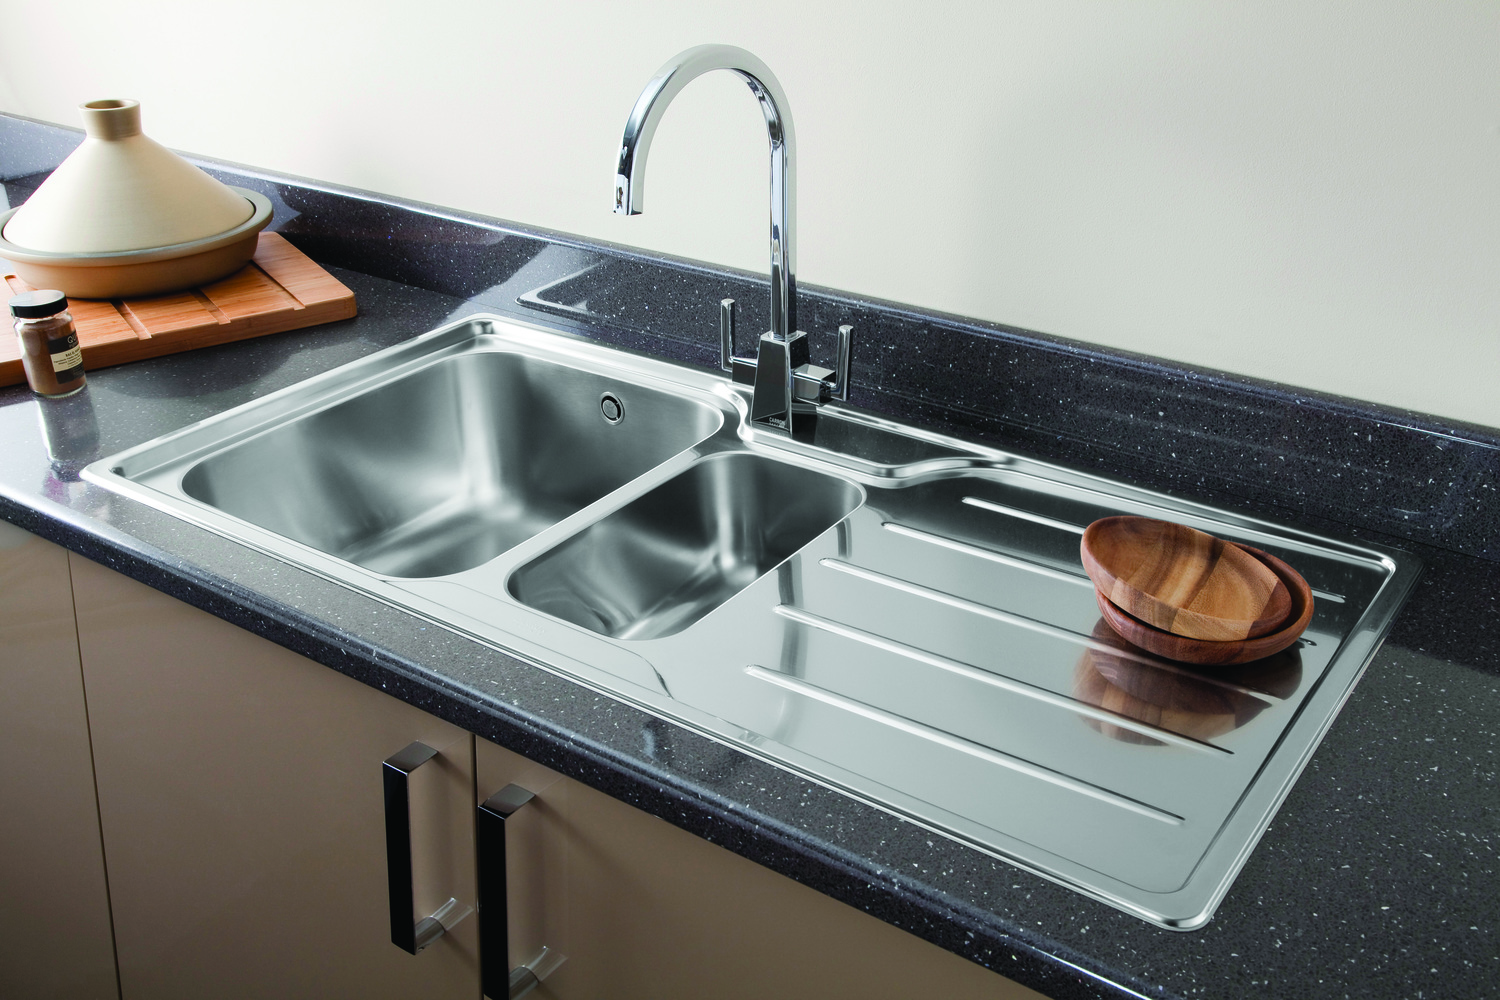 Amazing How To Fix A Clogged Kitchen Sink With Disposal Image ...